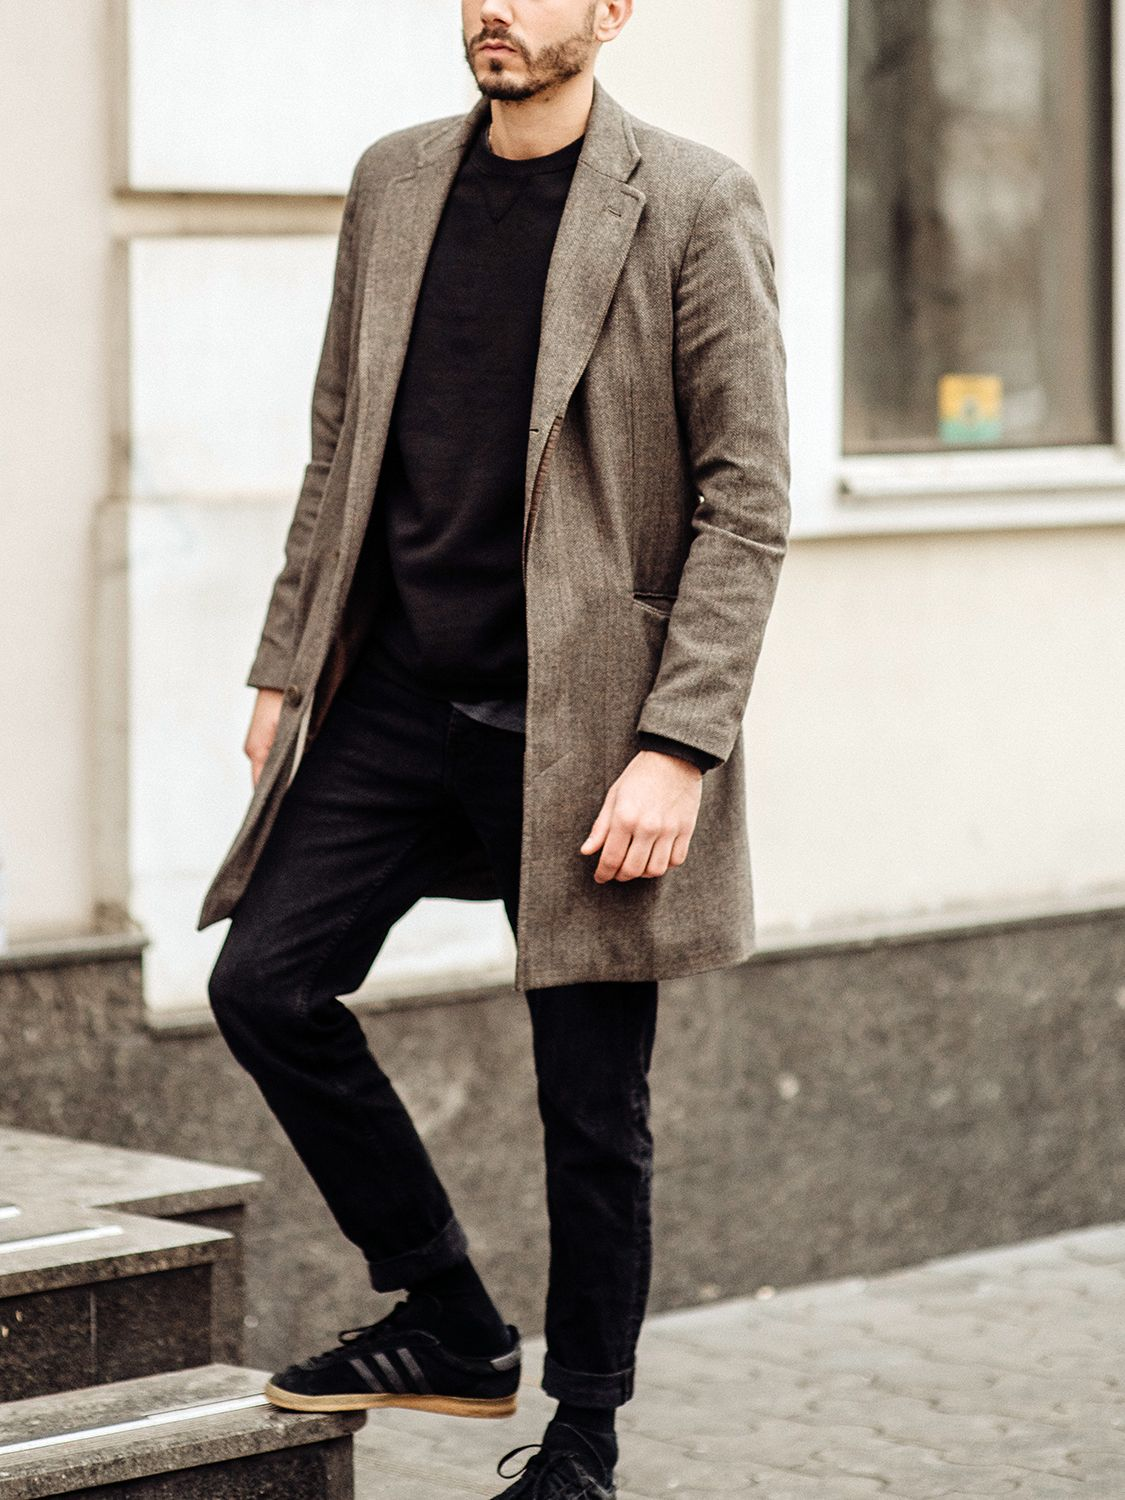 Men's outfit idea for 2021 with brown single-breasted overcoat, black sweatshirt, black jeans, black trainers / sneakers. Suitable for autumn and winter.